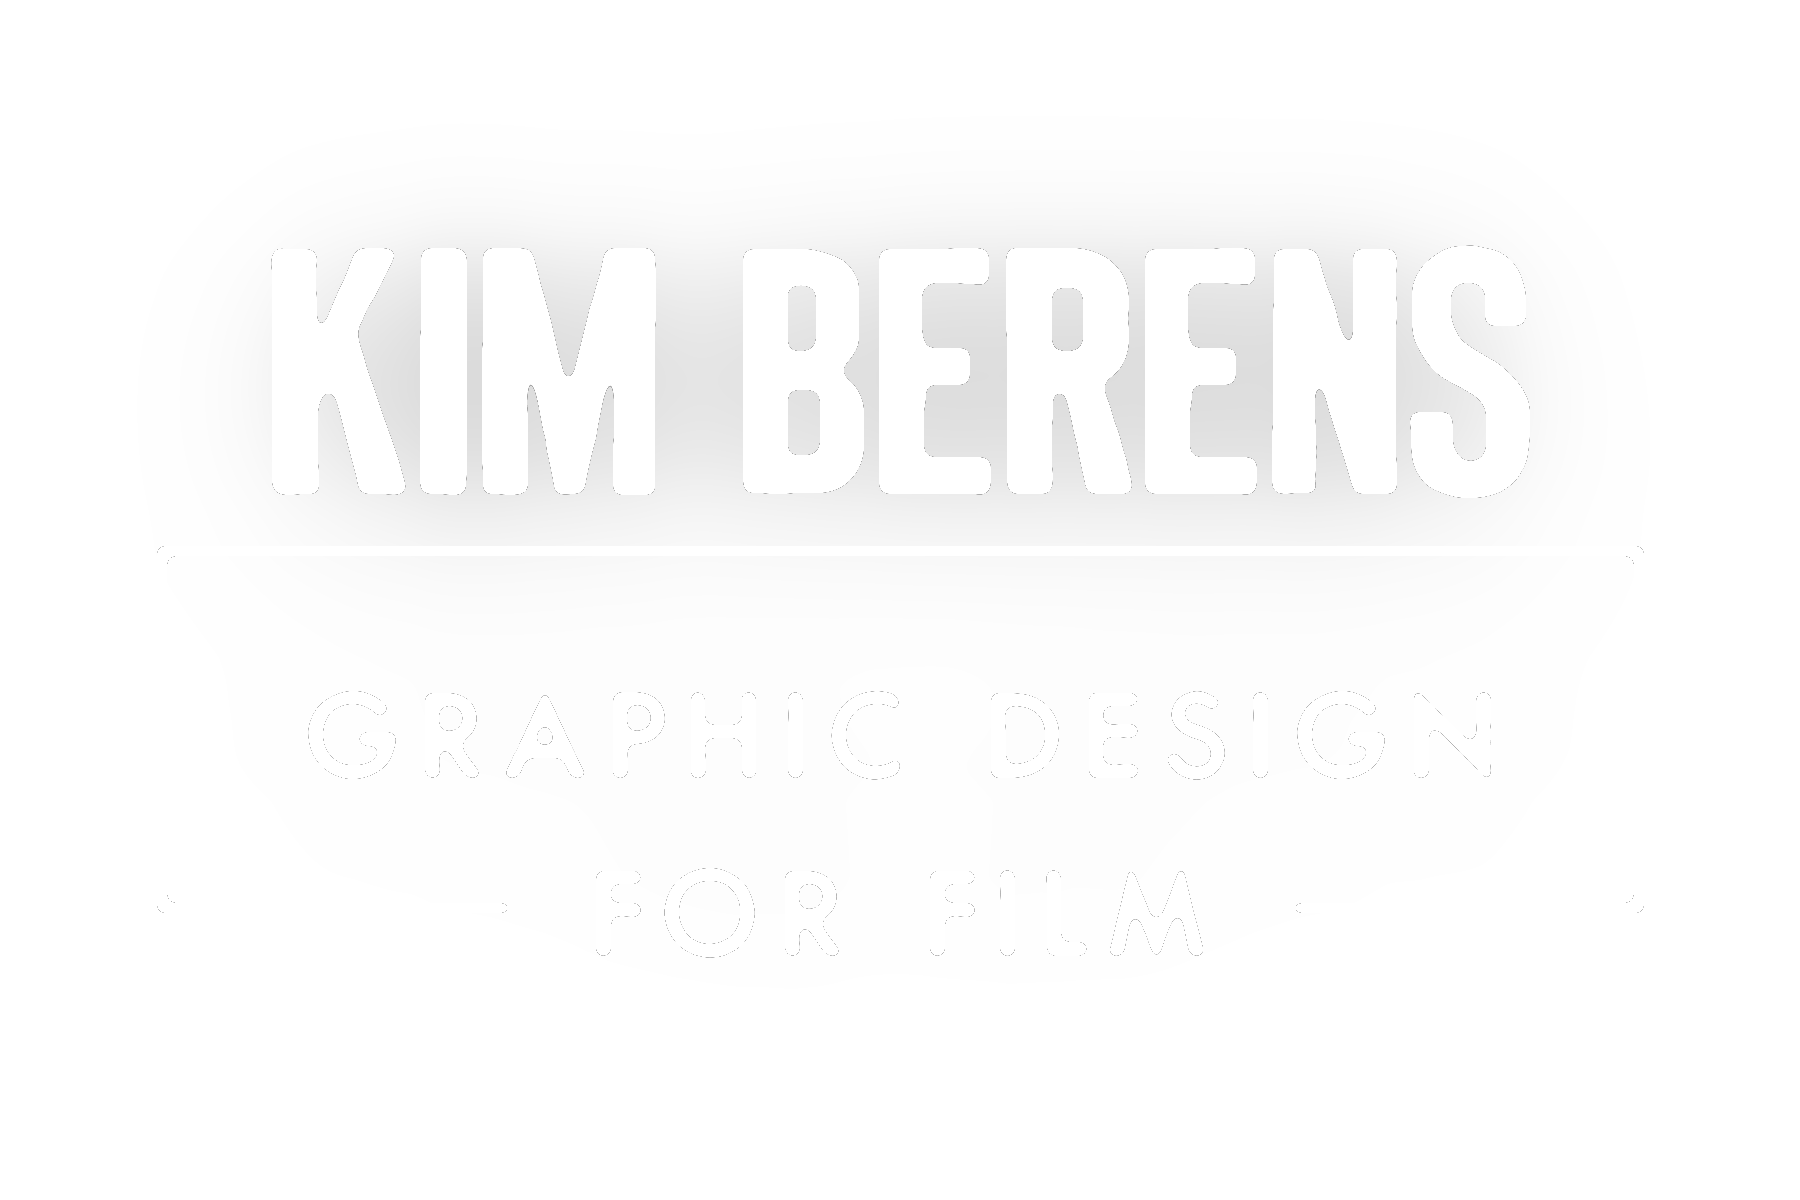 kimberens_logo_stacked_white_shadow2.png